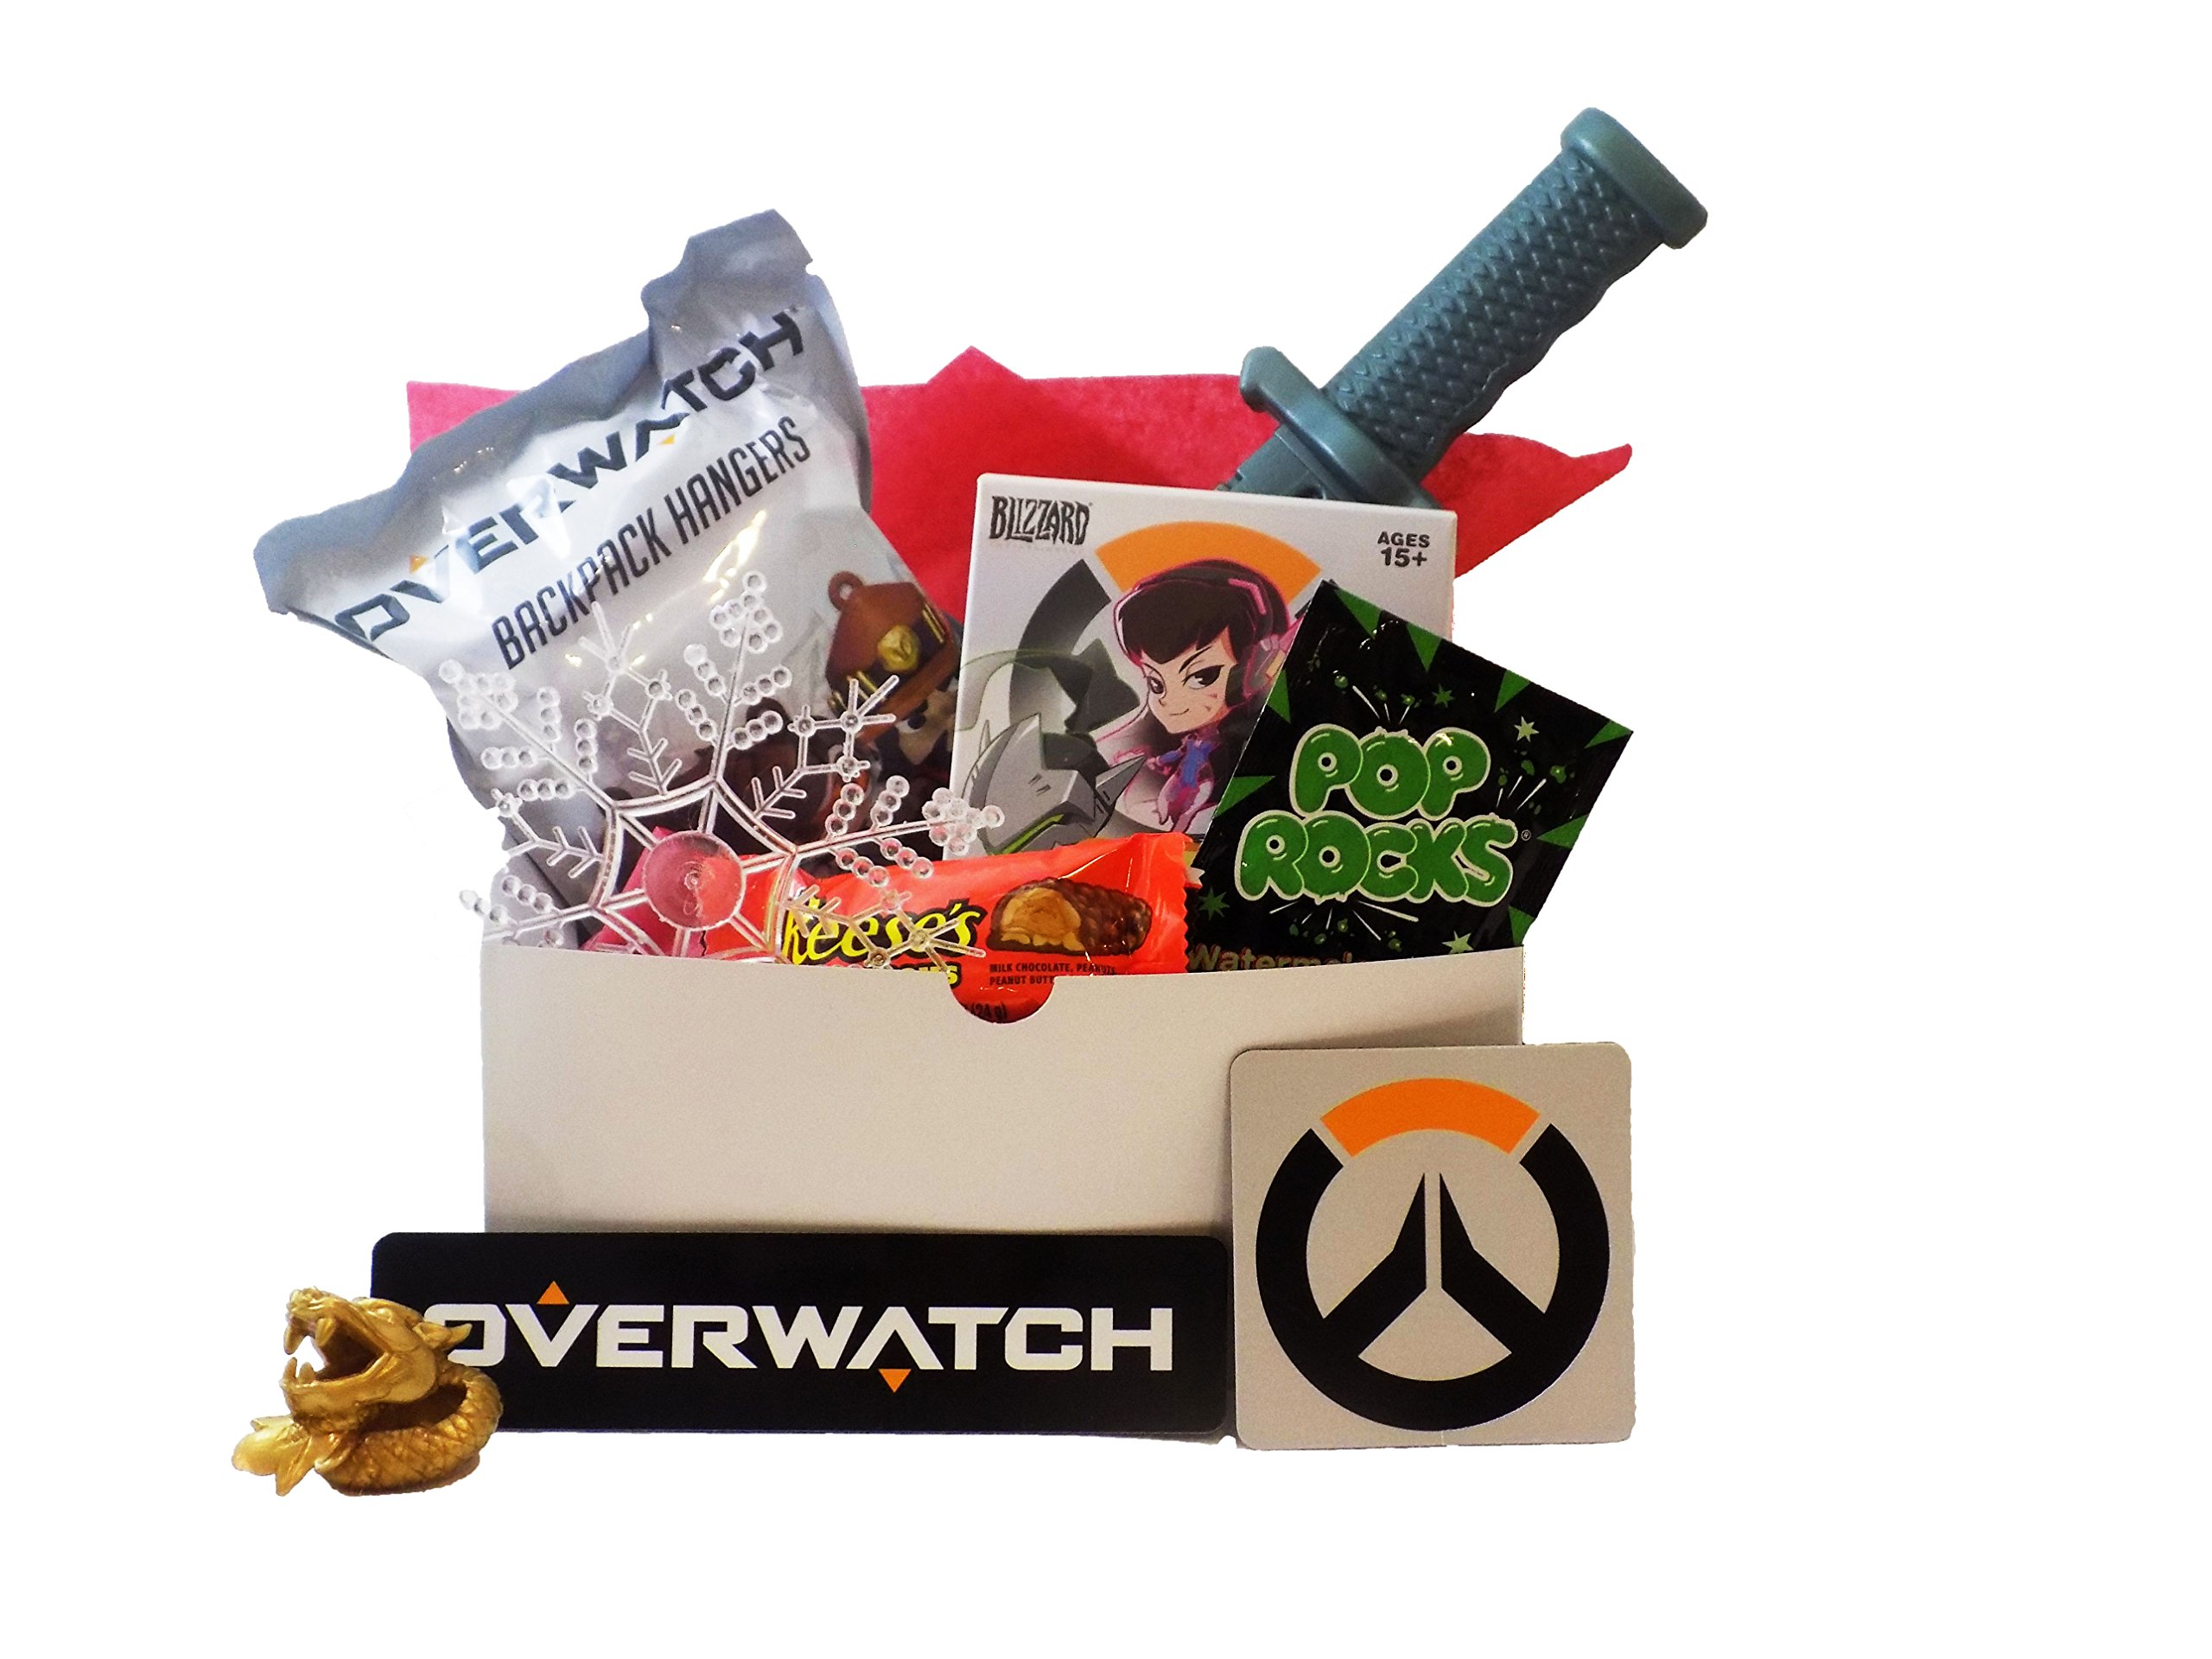 Overwatch Video Game Themed Candy and Toy Gift Basket